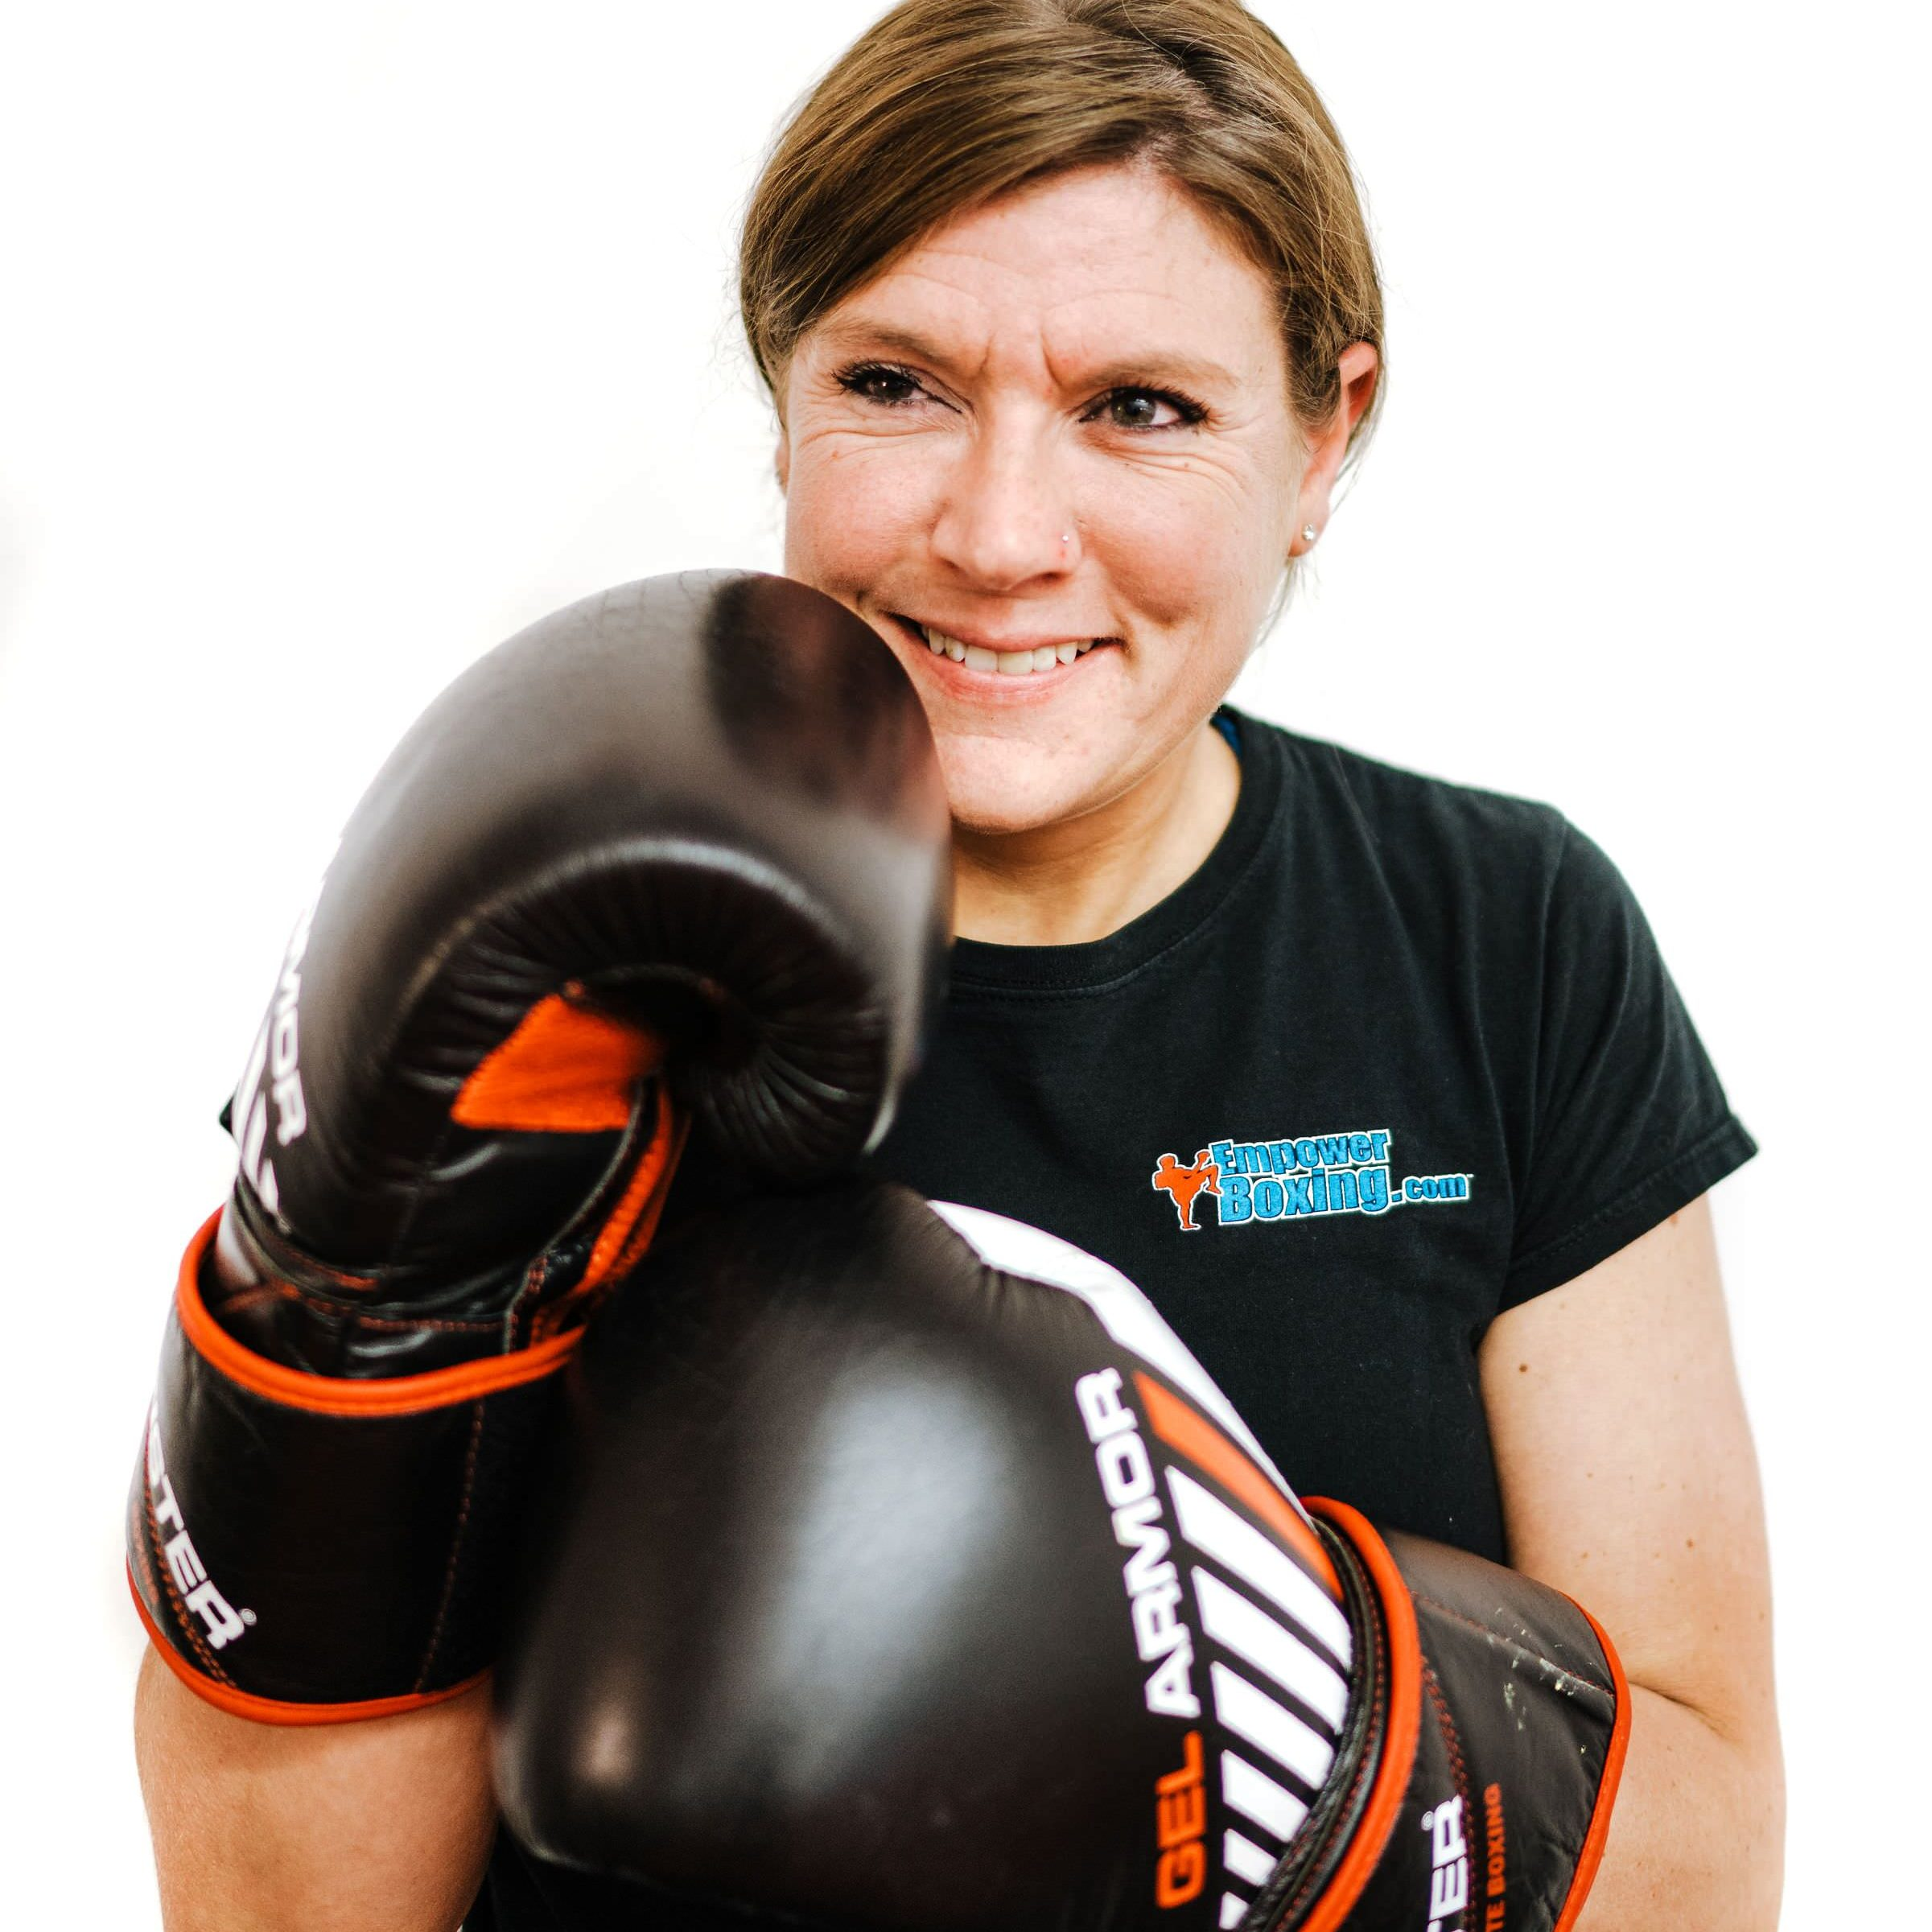 instructor empower boxing, personal trainer and program director enriching condifence Kayla Flynn